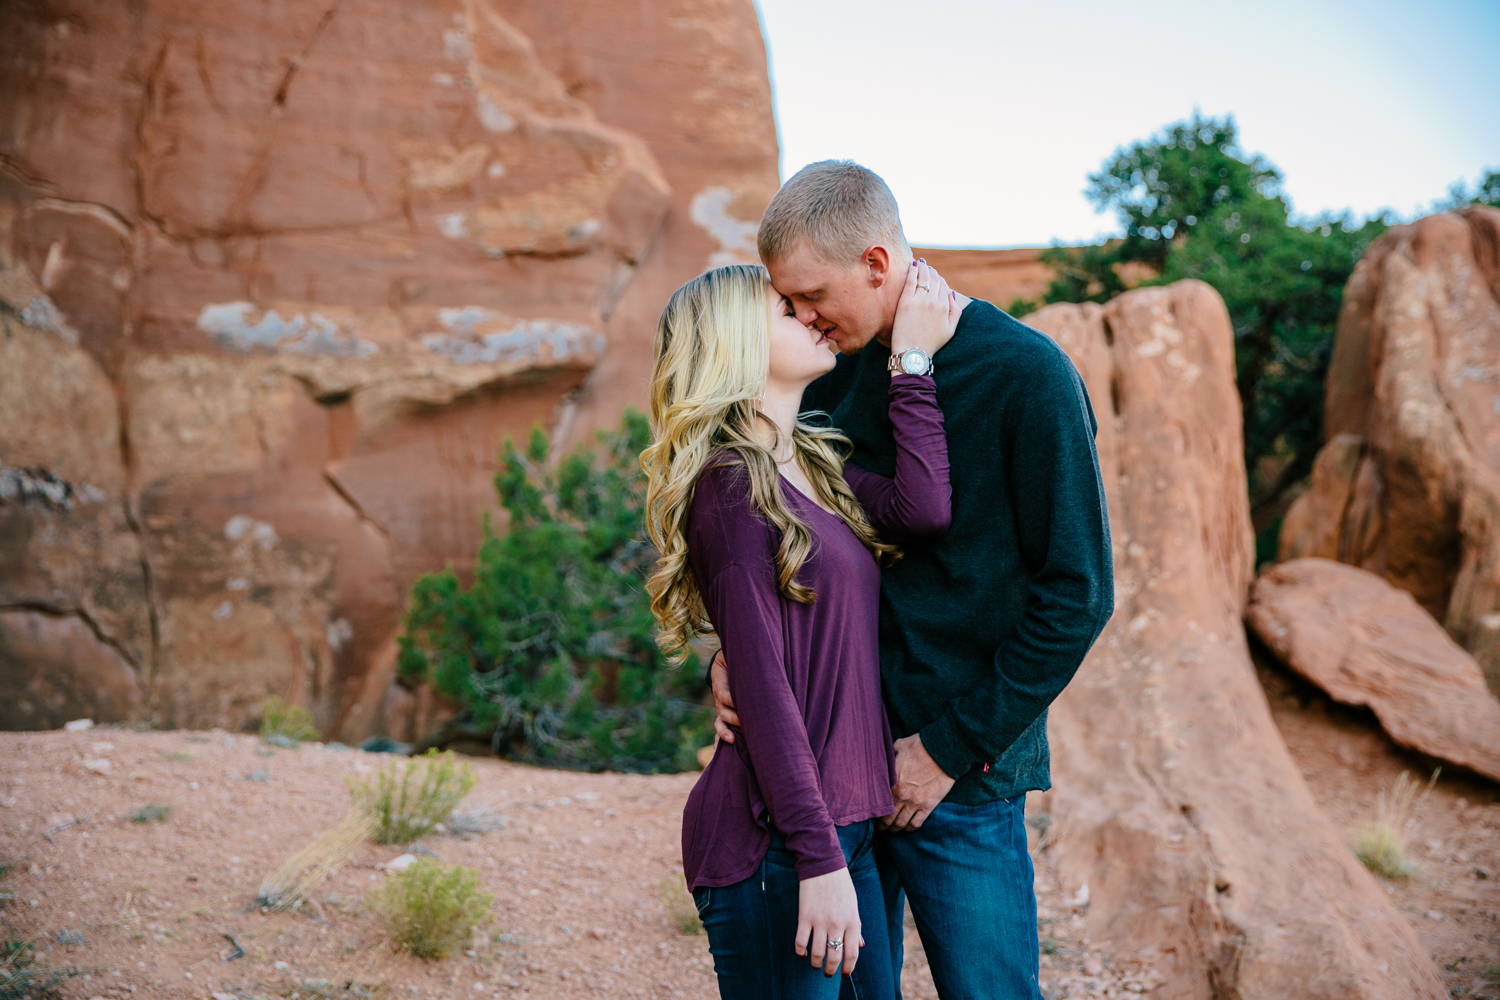 grand-junction-colorado-monument-wedding-photographer-engagements-17.jpg